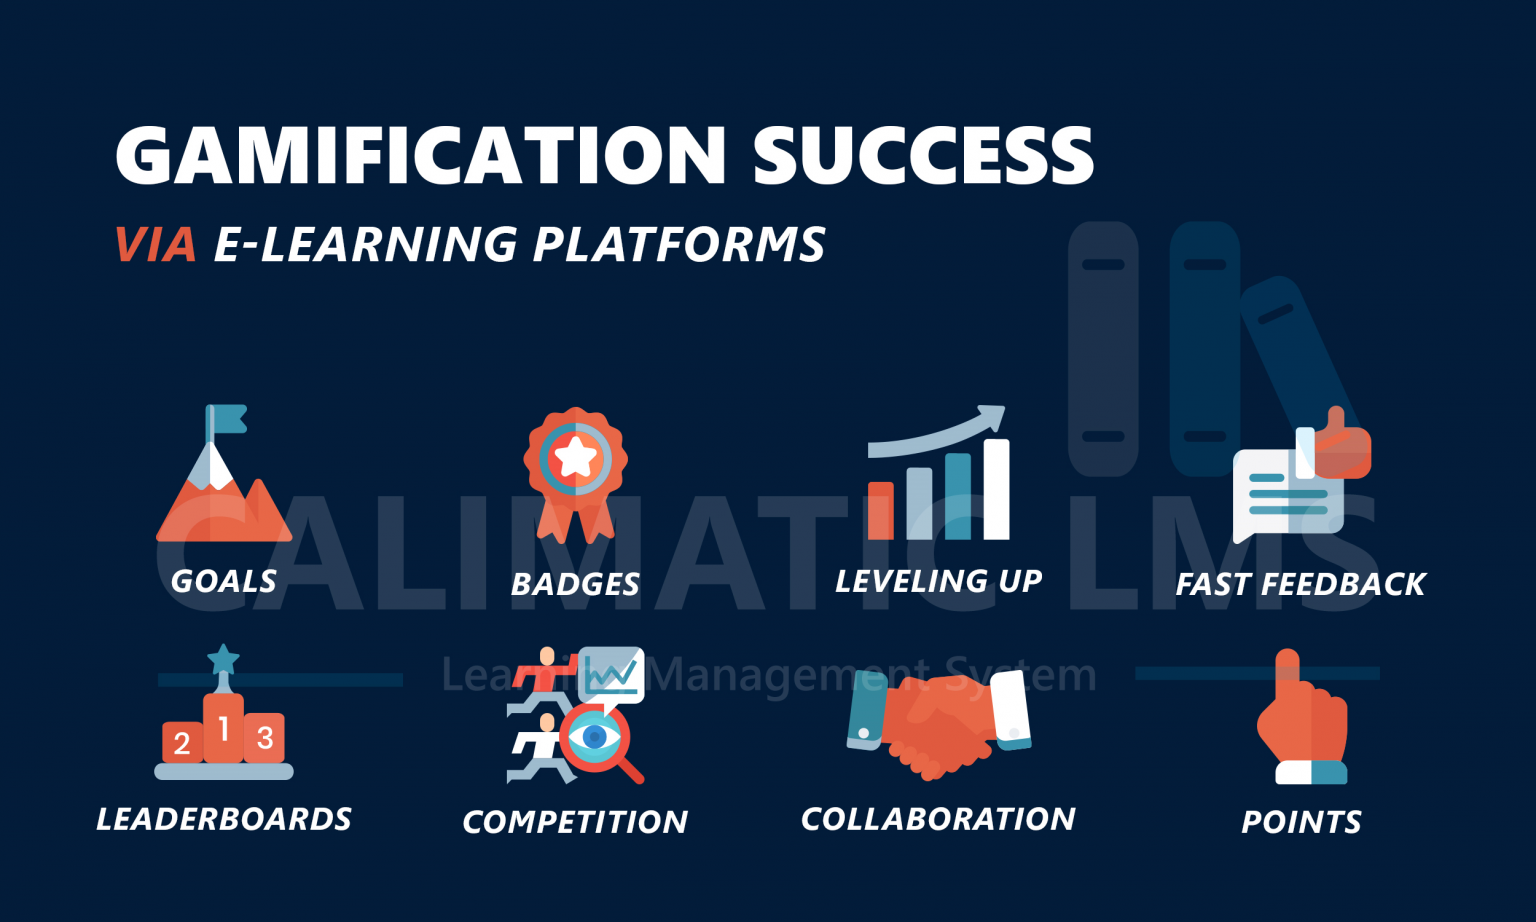 Gamification in Education - Gamification success through Calimatic EdTech